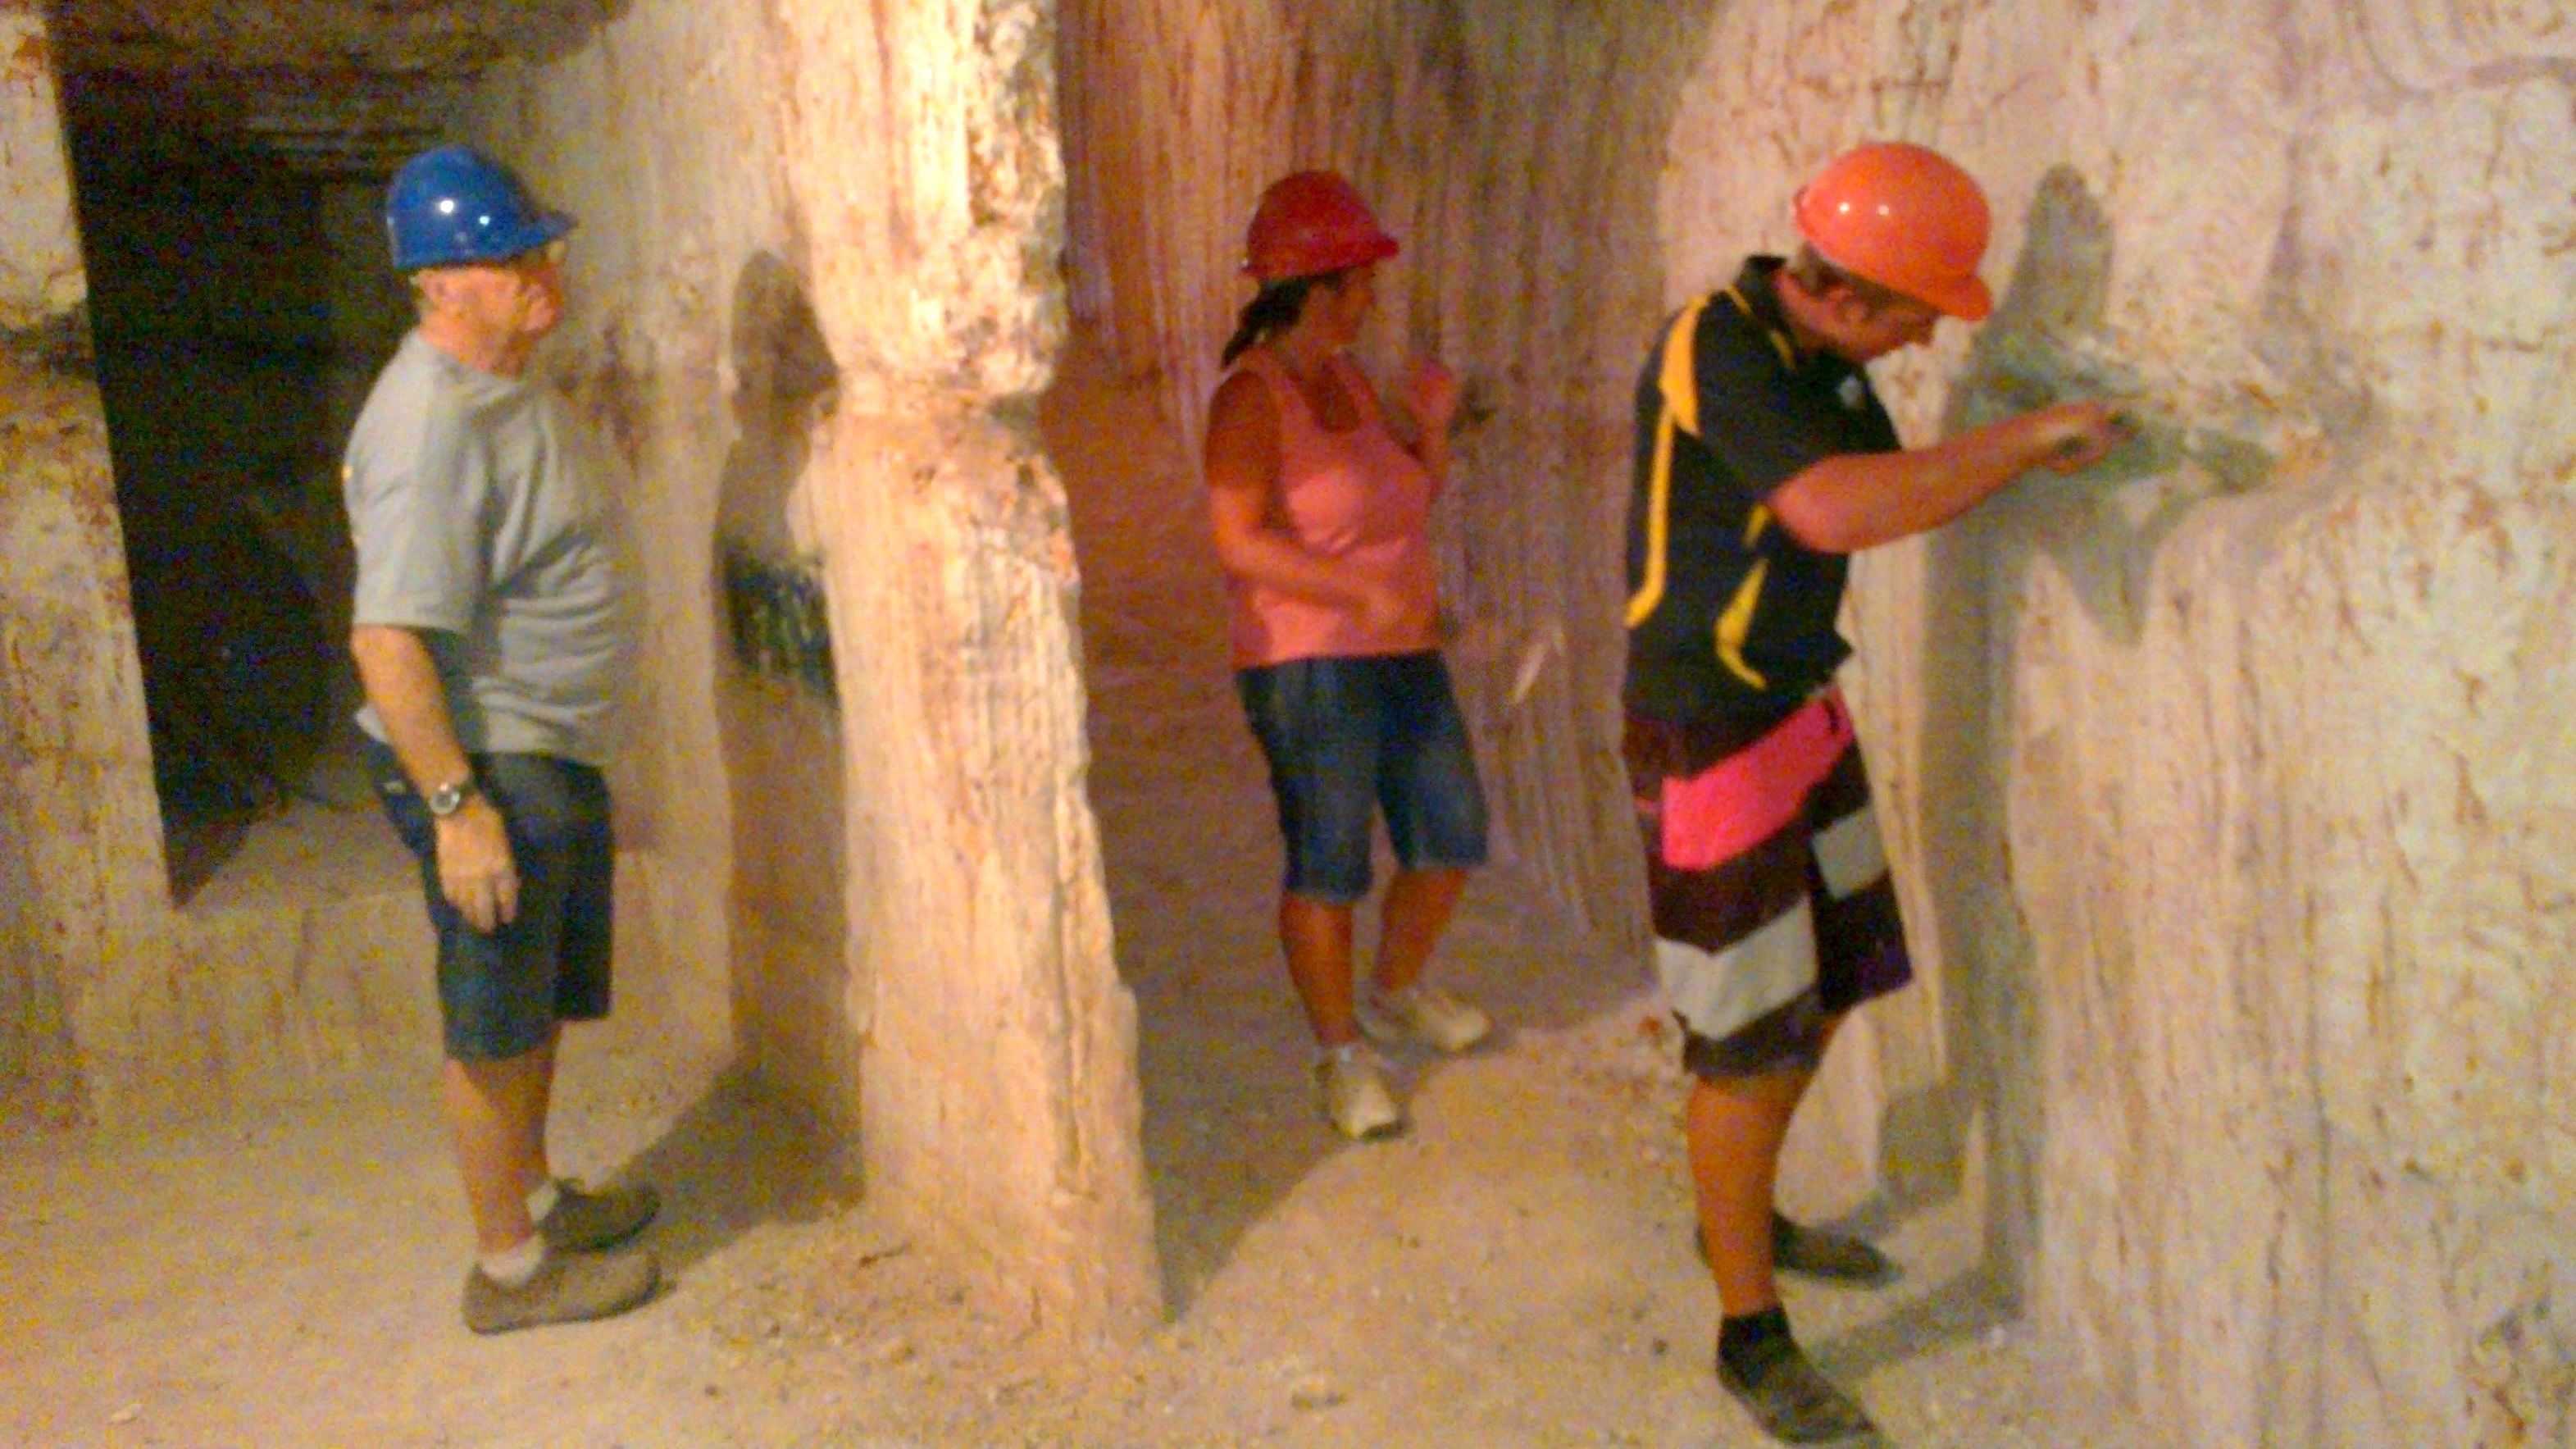 Group tours a cave in Adelaide